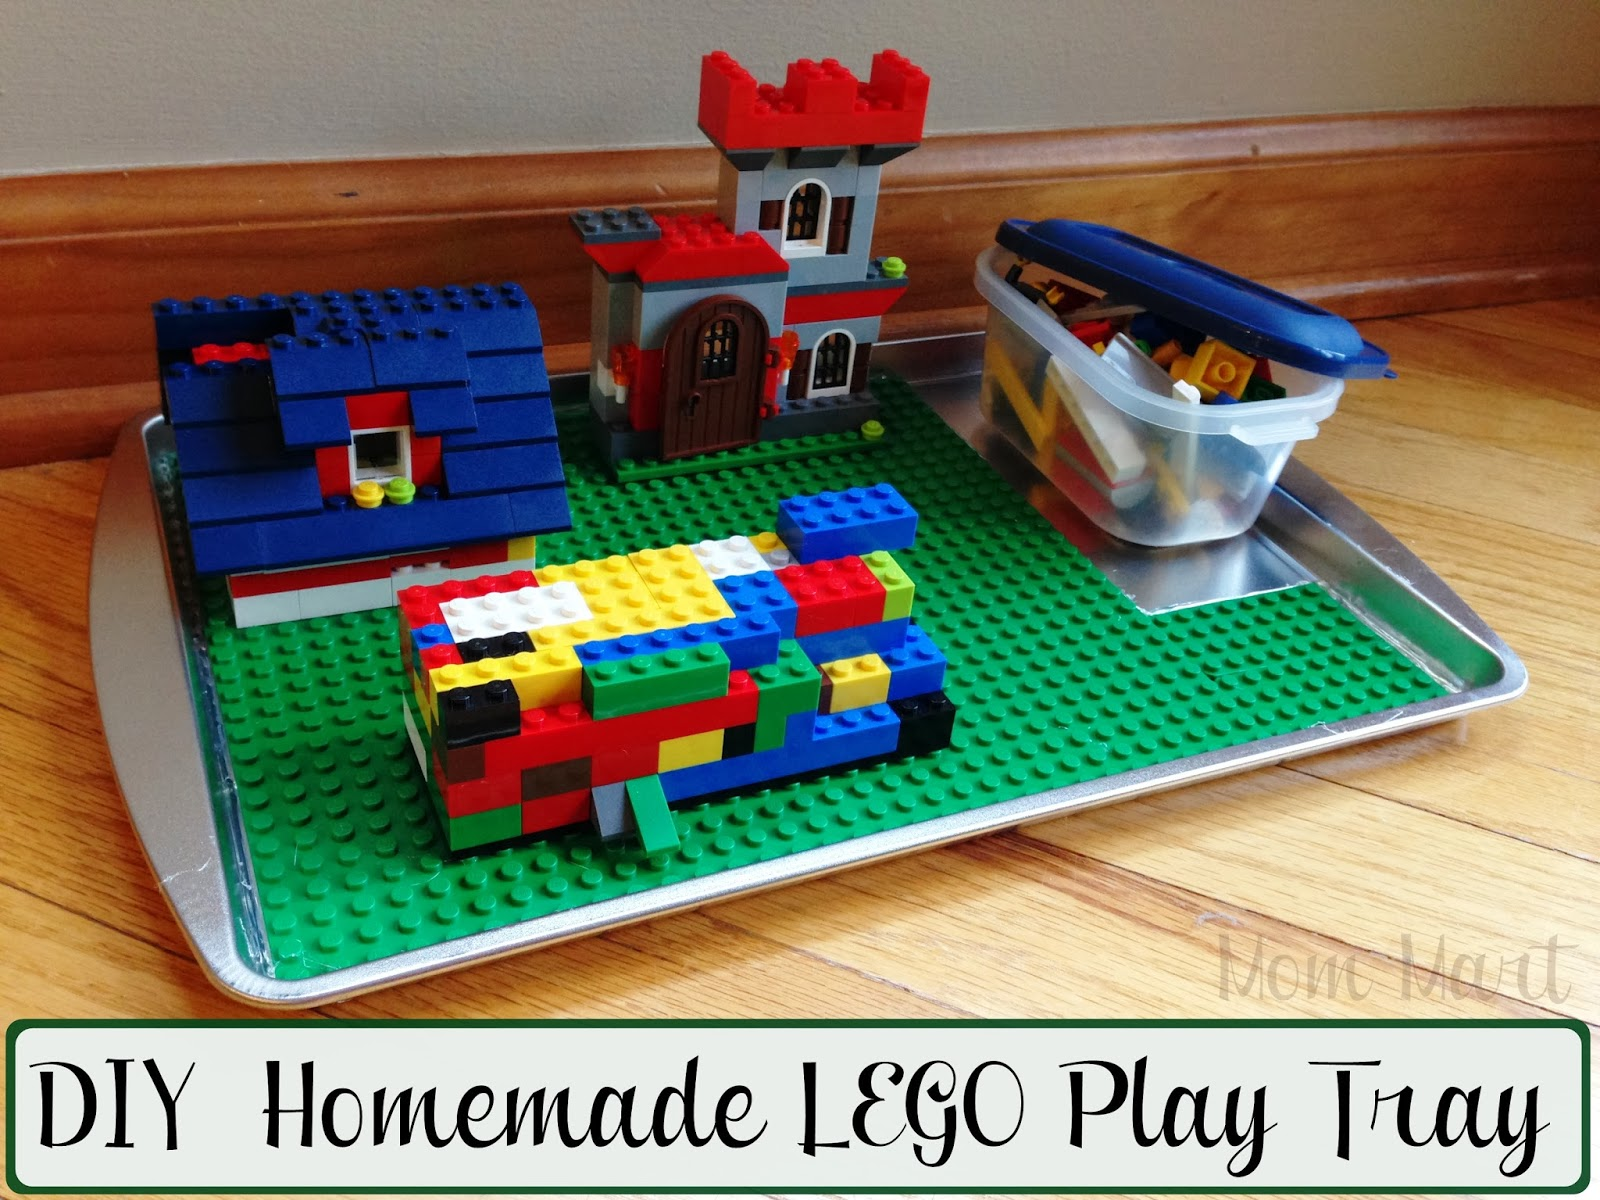 LEGO Play Tray DIY Homemade